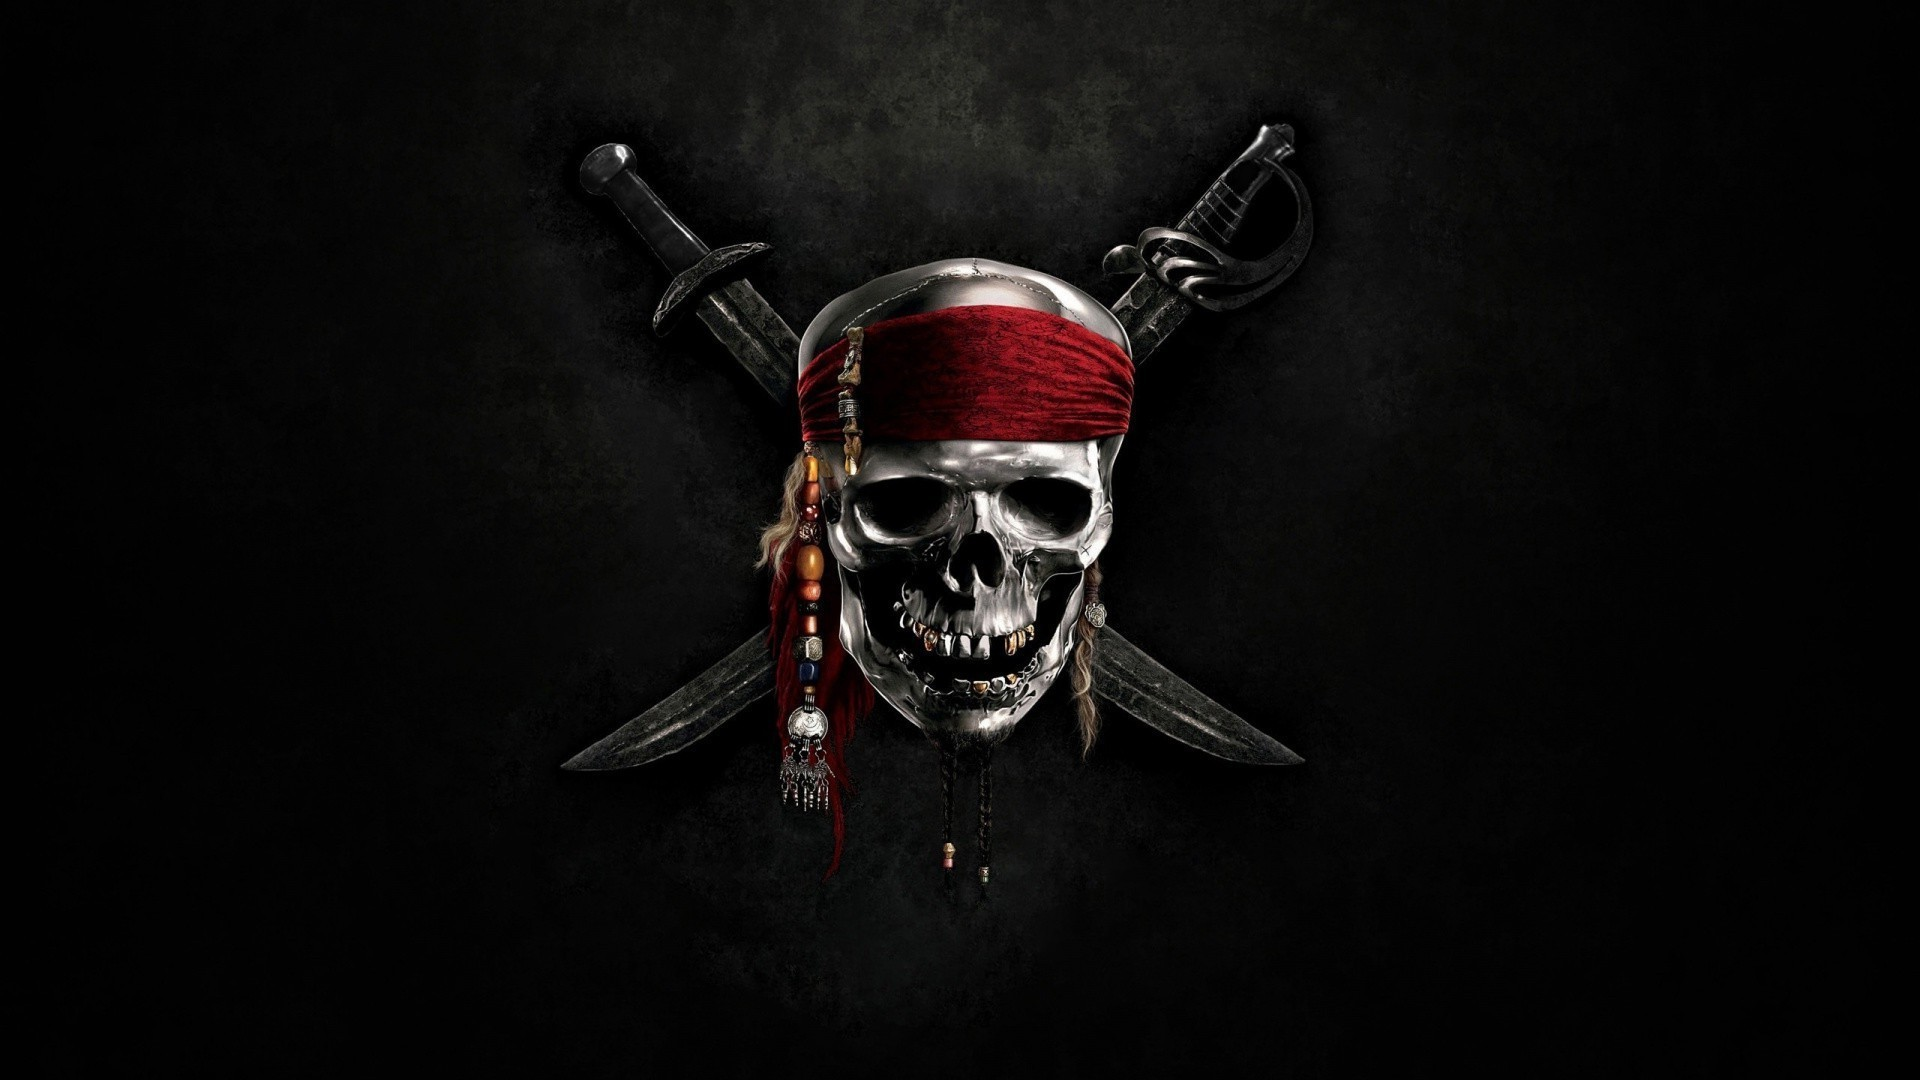 … movies pirates of the caribbean on stranger tides braum; pirates  wallpapers …